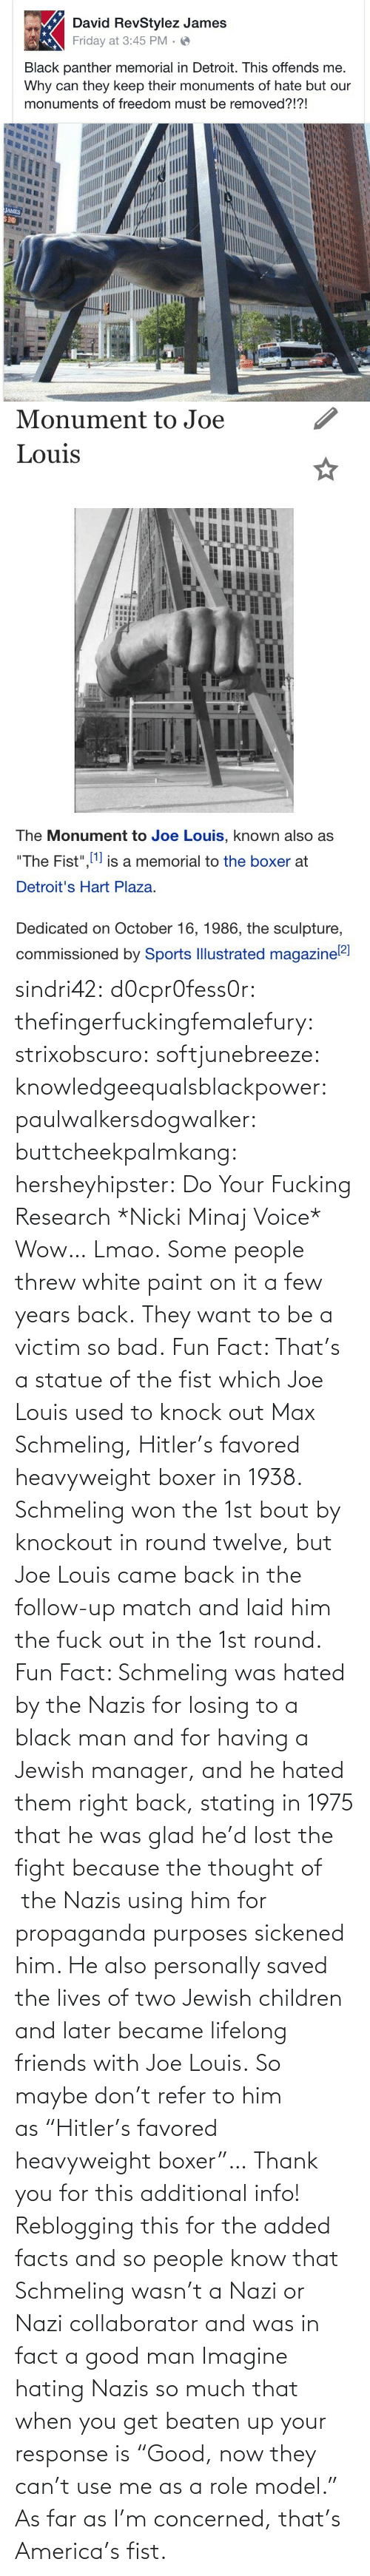 "A Few: sindri42:  d0cpr0fess0r:  thefingerfuckingfemalefury:  strixobscuro:  softjunebreeze:  knowledgeequalsblackpower:  paulwalkersdogwalker:   buttcheekpalmkang:   hersheyhipster:  Do Your Fucking Research *Nicki Minaj Voice*    Wow… Lmao.   Some people threw white paint on it a few years back.   They want to be a victim so bad.  Fun Fact: That's a statue of the fist which Joe Louis used to knock out Max Schmeling, Hitler's favored heavyweight boxer in 1938. Schmeling won the 1st bout by knockout in round twelve, but Joe Louis came back in the follow-up match and laid him the fuck out in the 1st round.  Fun Fact: Schmeling was hated by the Nazis for losing to a black man and for having a Jewish manager, and he hated them right back, stating in 1975 that he was glad he'd lost the fight because the thought of  the Nazis using him for propaganda purposes sickened him. He also personally saved the lives of two Jewish children and later became lifelong friends with Joe Louis. So maybe don't refer to him as ""Hitler's favored heavyweight boxer""…  Thank you for this additional info! Reblogging this for the added facts and so people know that Schmeling wasn't a Nazi or Nazi collaborator and was in fact a good man   Imagine hating Nazis so much that when you get beaten up your response is ""Good, now they can't use me as a role model.""  As far as I'm concerned, that's America's fist."